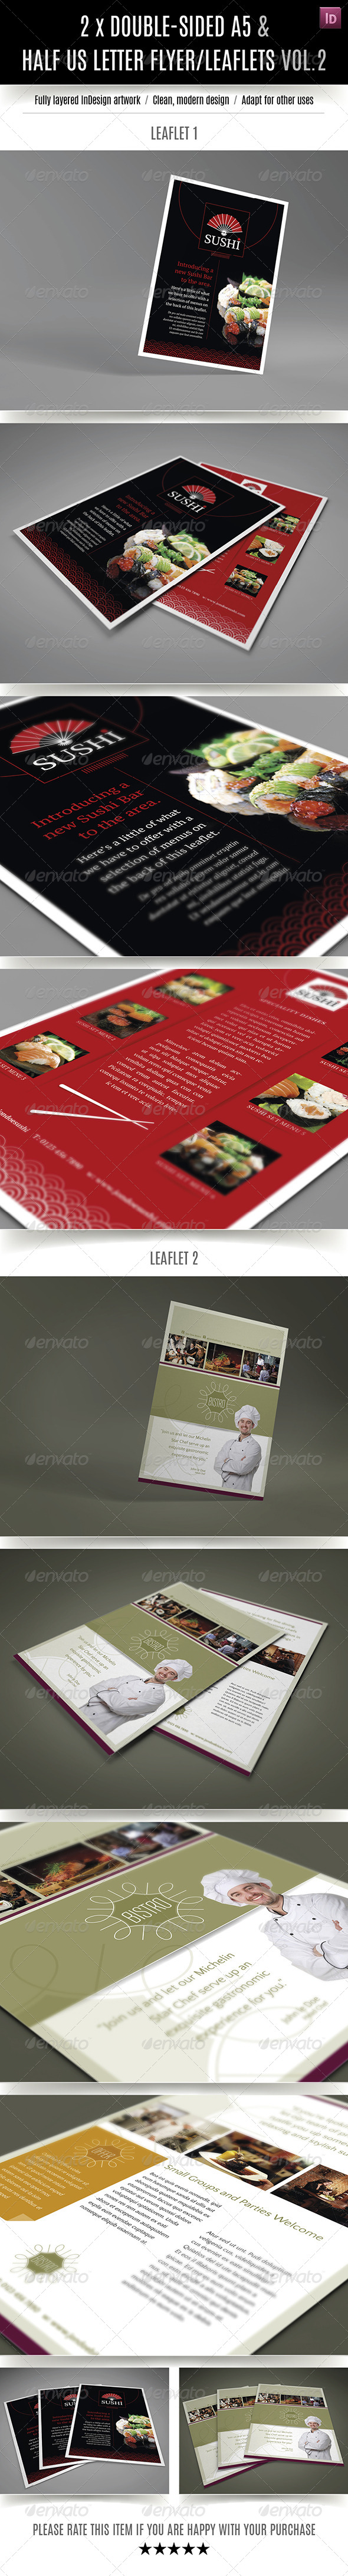 GraphicRiver 2 Double-sided A5 Half Letter Restaurant Flyers 7807044